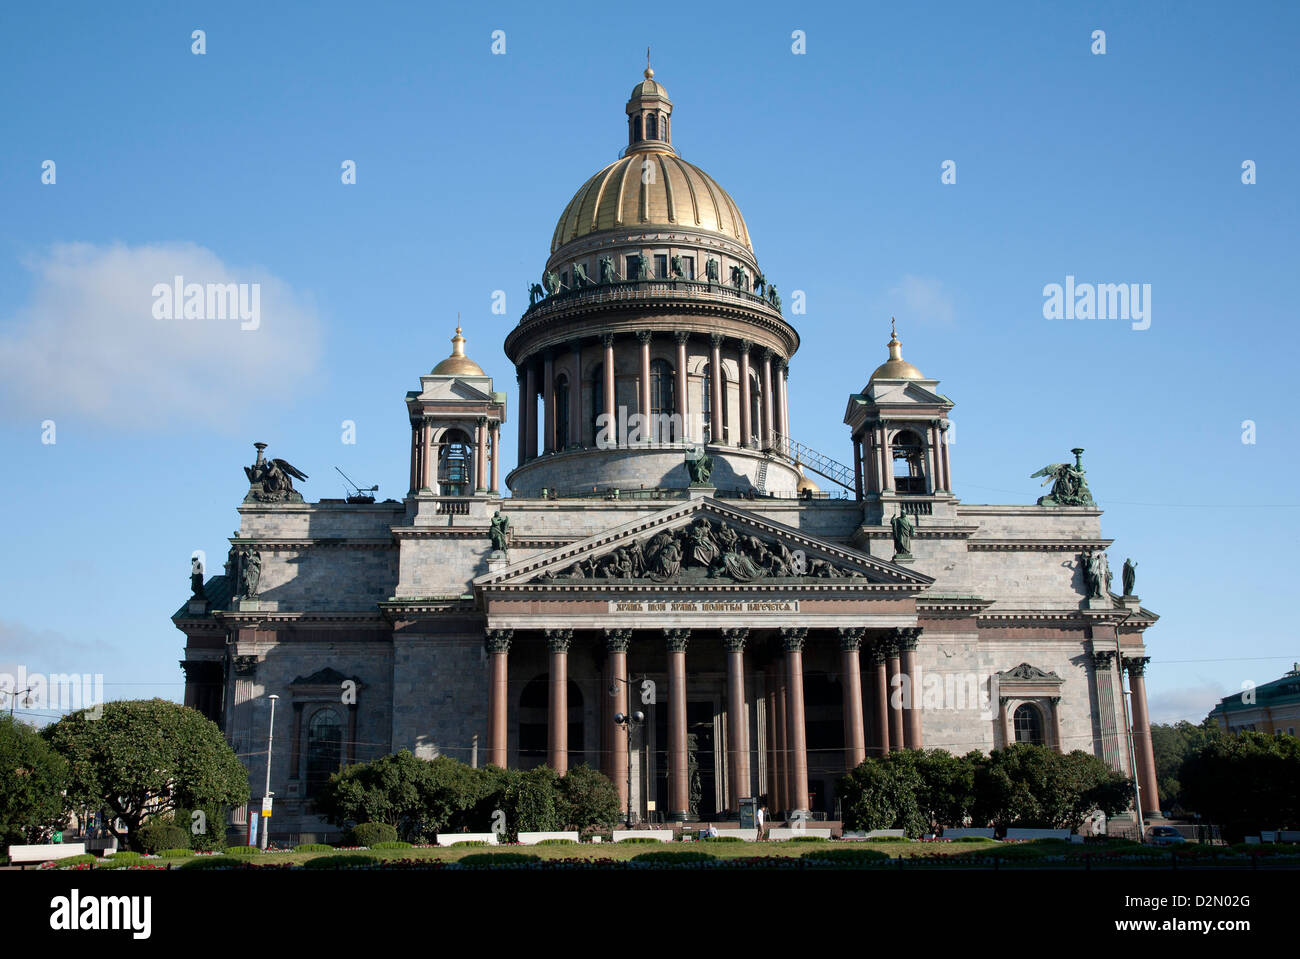 St. Isaacs Cathedral, St. Isaacs Square, St. Petersburg, Russia, Europe - Stock Image